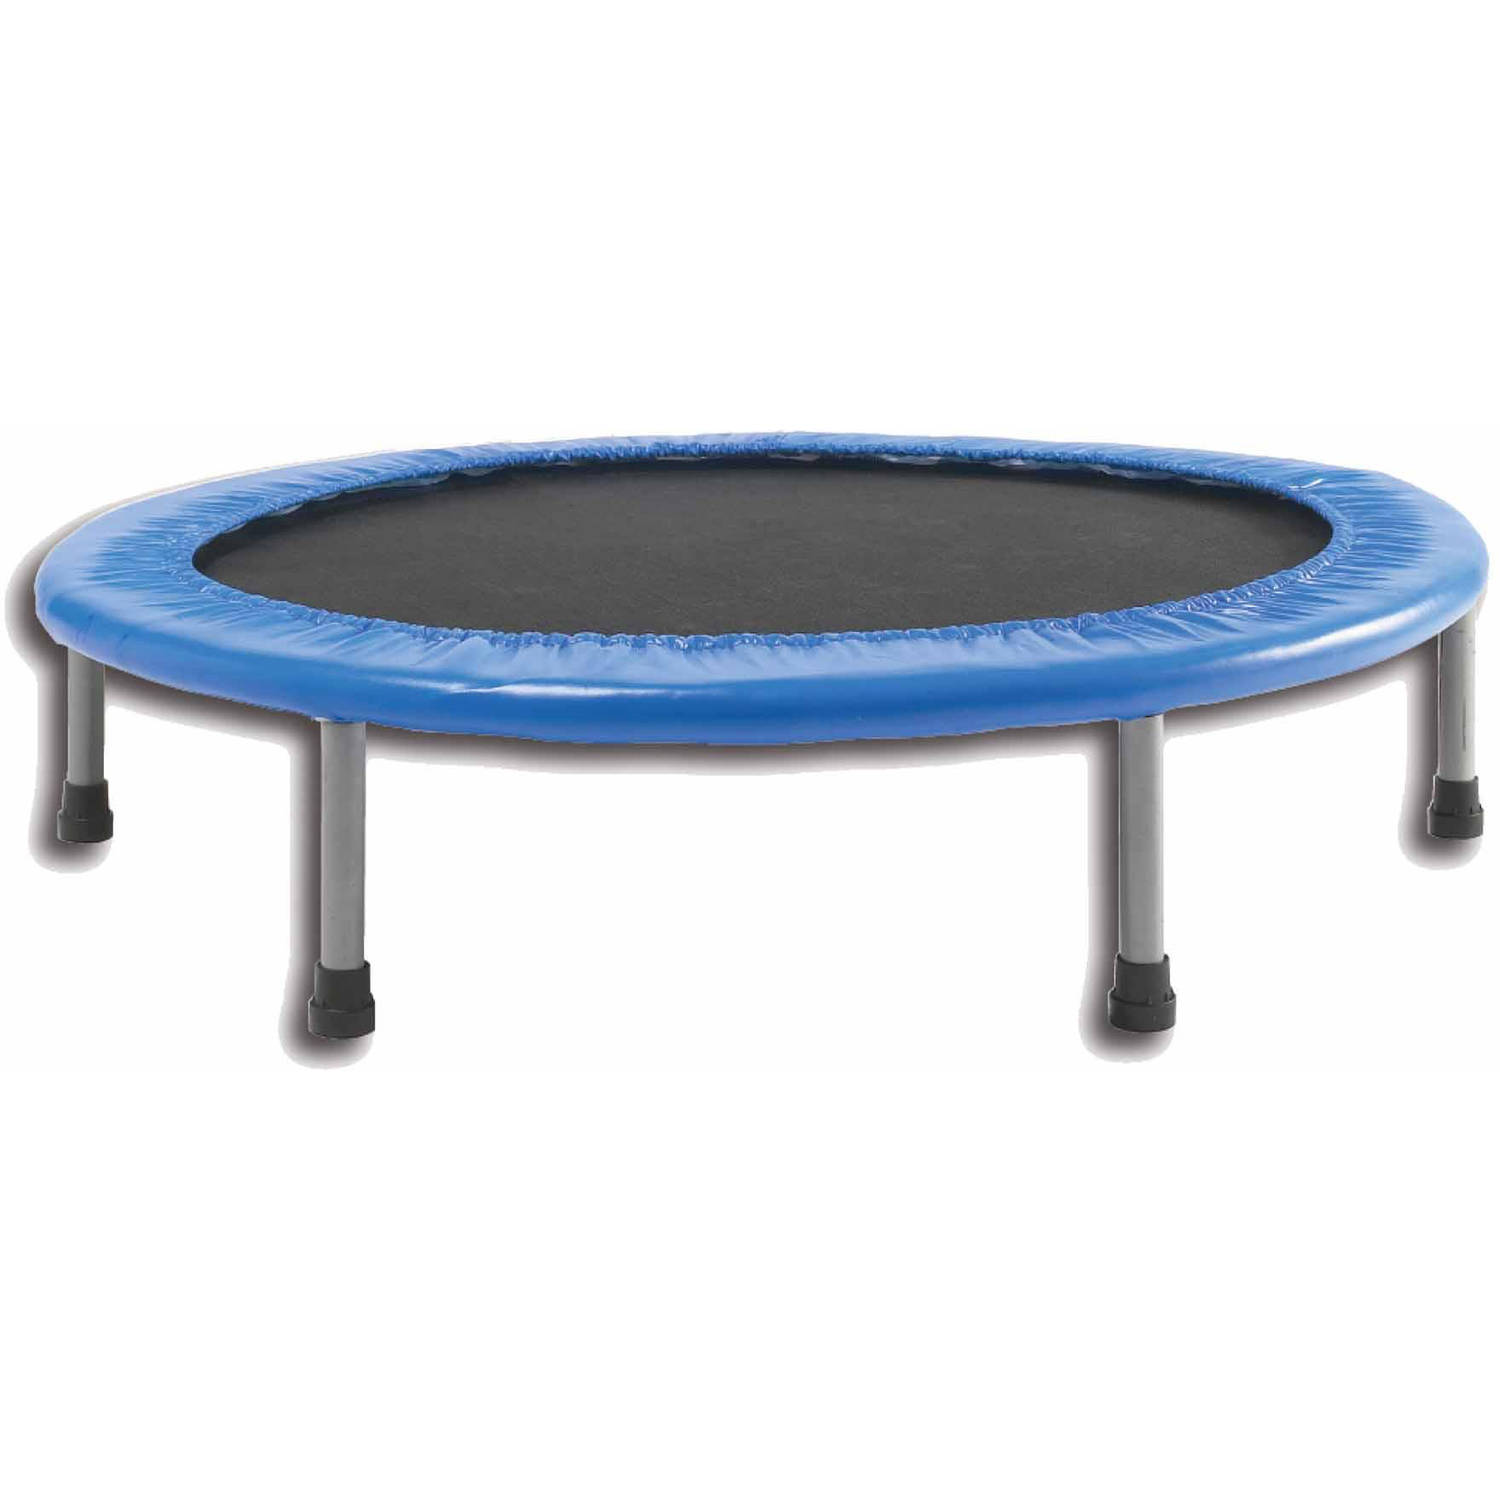 airzone 38 inch fitness trampoline blue walmart com